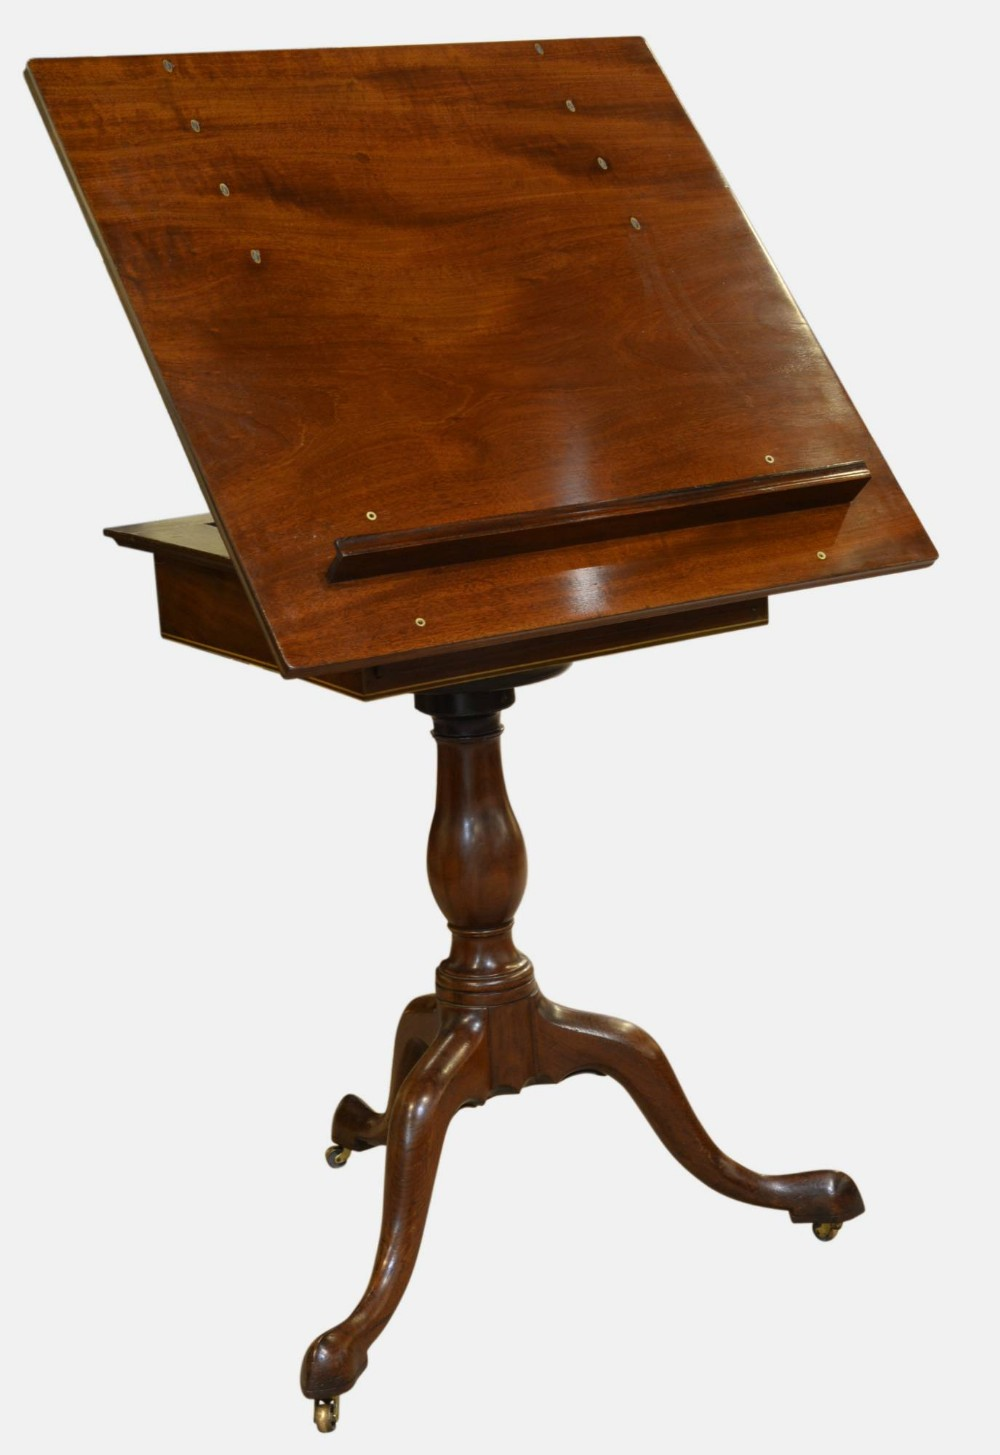 c18th artist's table